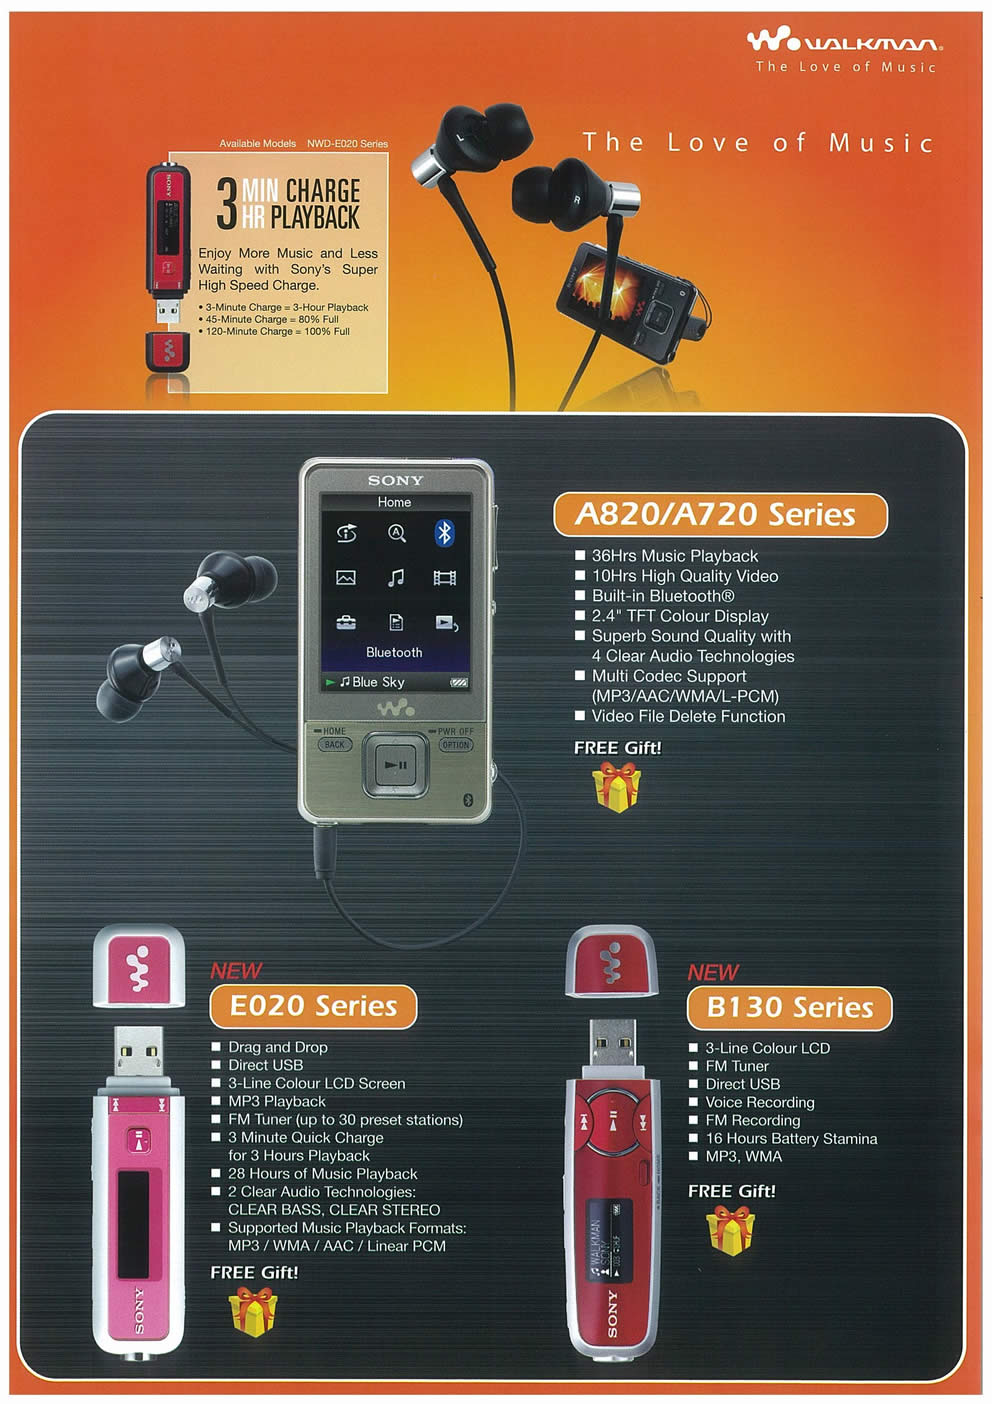 Comex 2008 price list image brochure of Sony Walkman Page 5